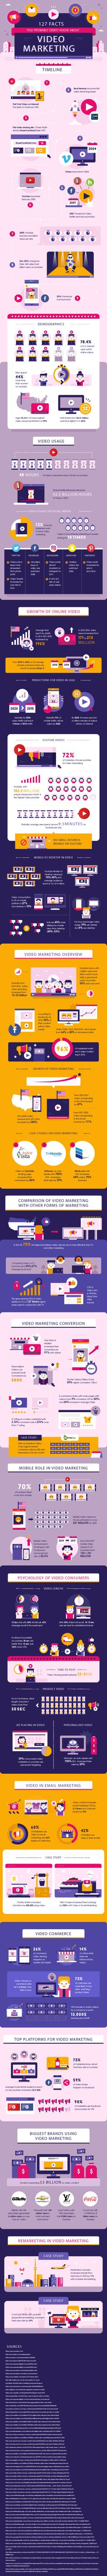 127 Facts You Probably Didn't Know About Video Marketing [Infographic] via @HubSpot